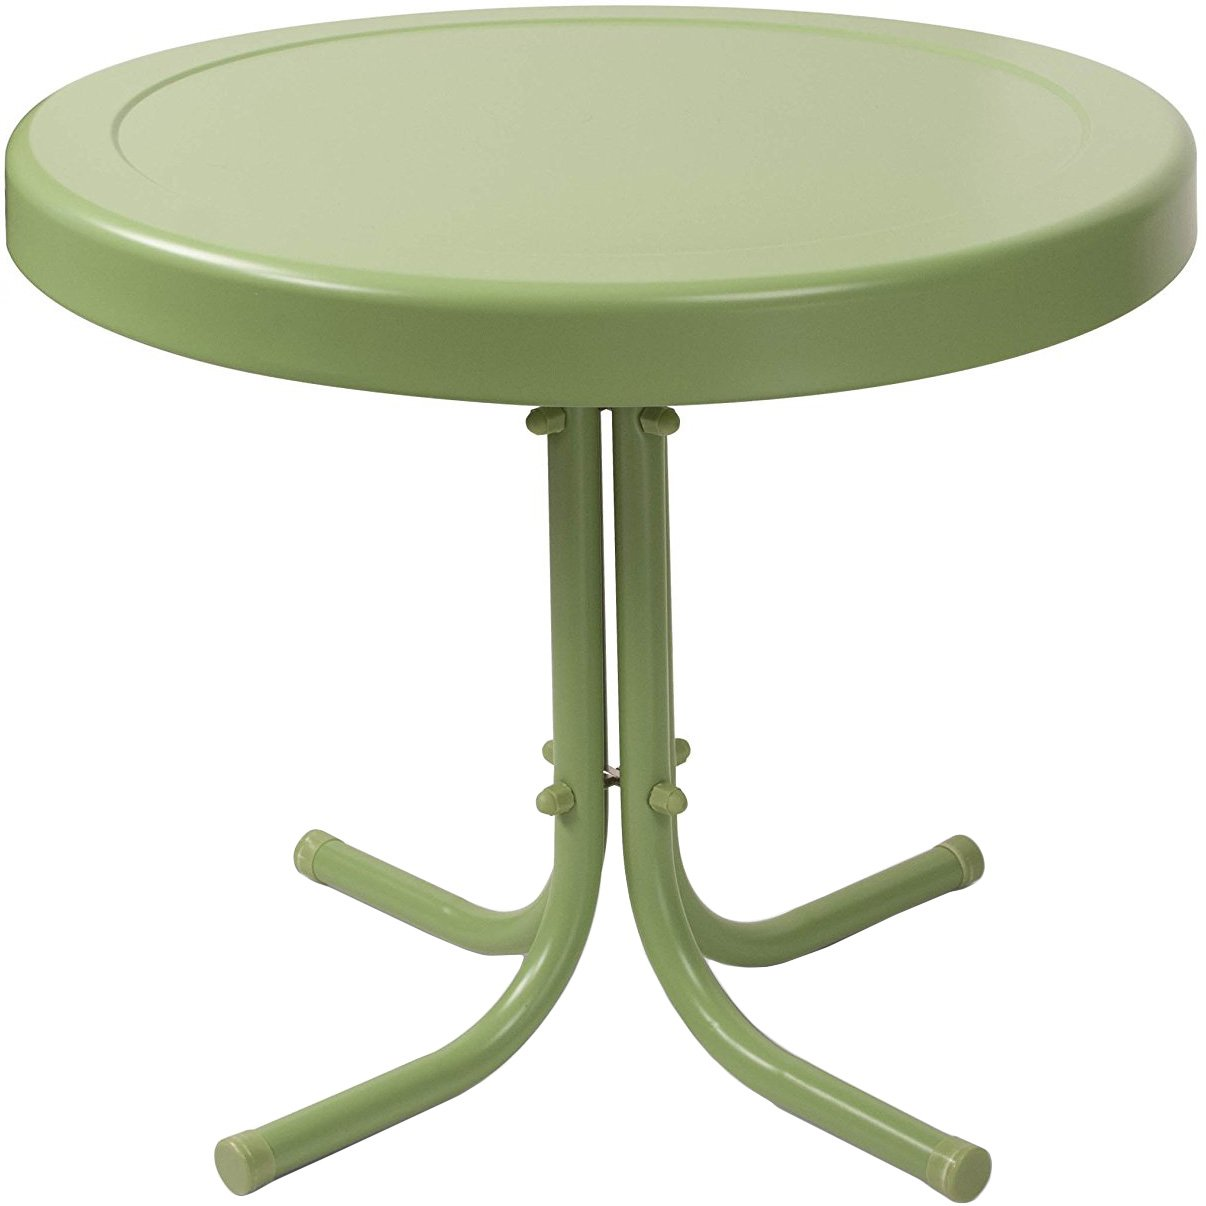 crosley furniture gracie retro inch metal outdoor wood side table oasis green kitchen dining round iron umbrella stand oak glass mat for piece setting bunnings tall corner accent